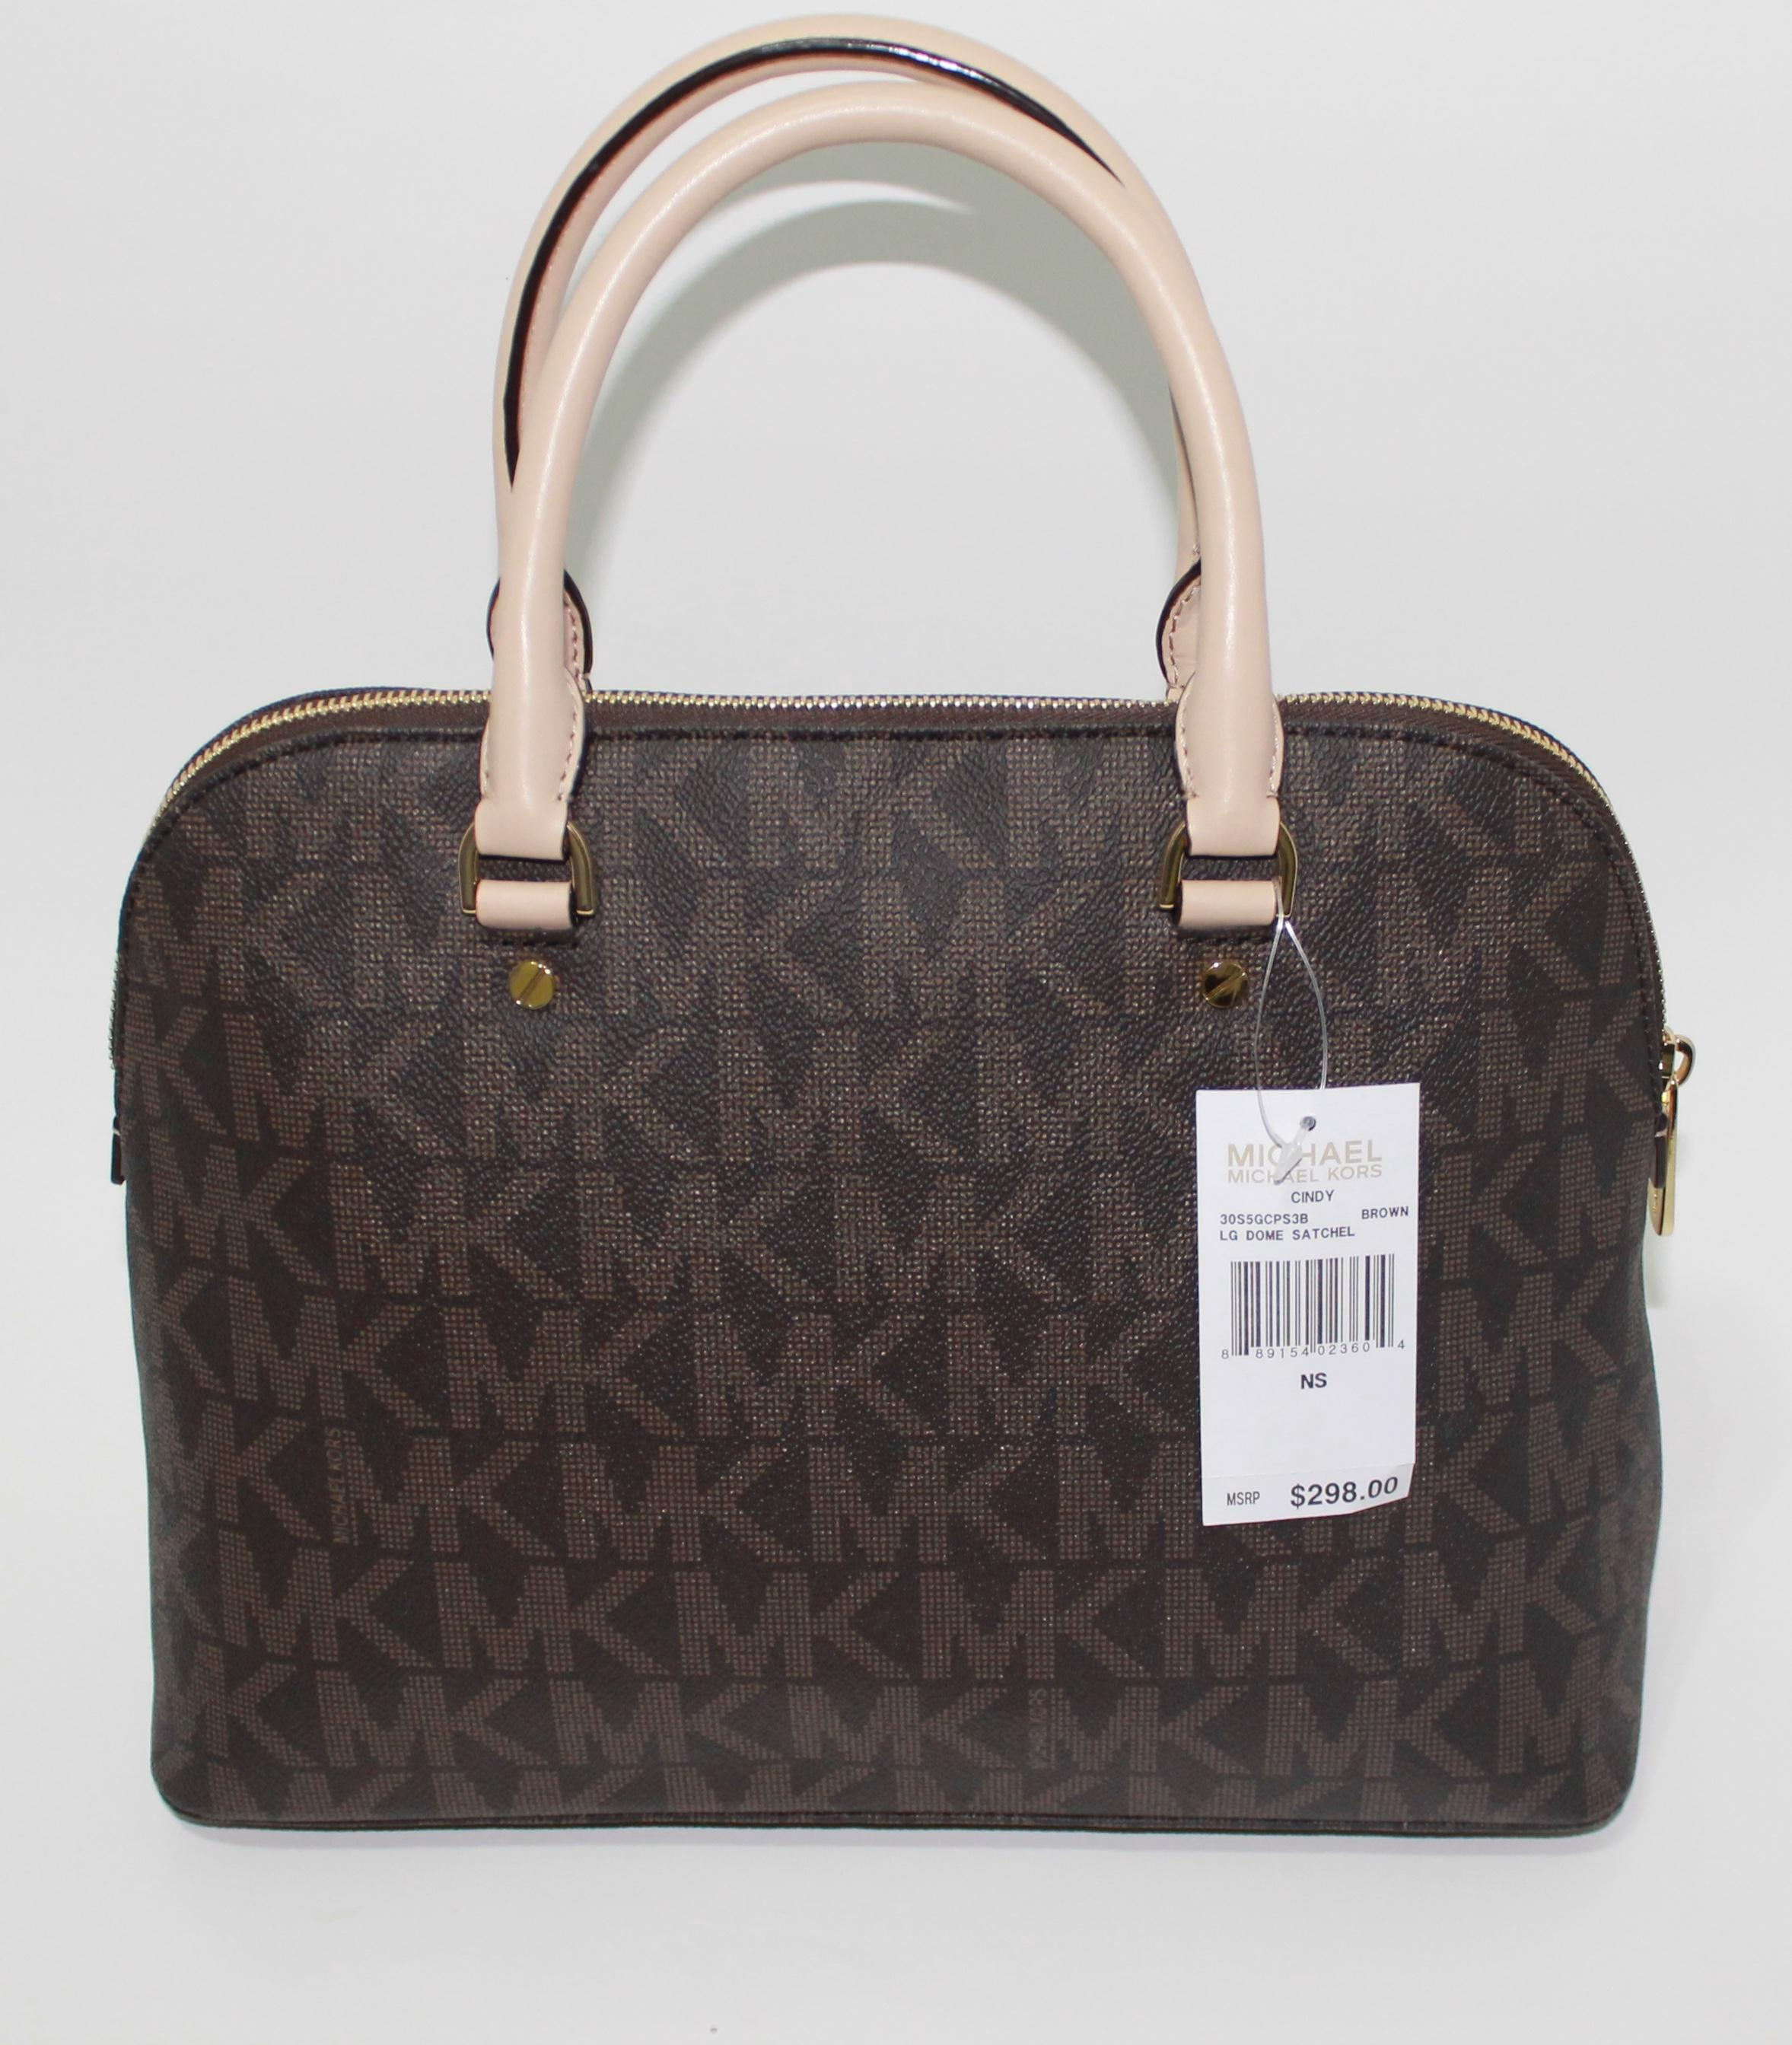 552406eb1fe9 ... new arrivals michael kors mk signature large cindy cindy 889154023604  purse logo handbag new with tags